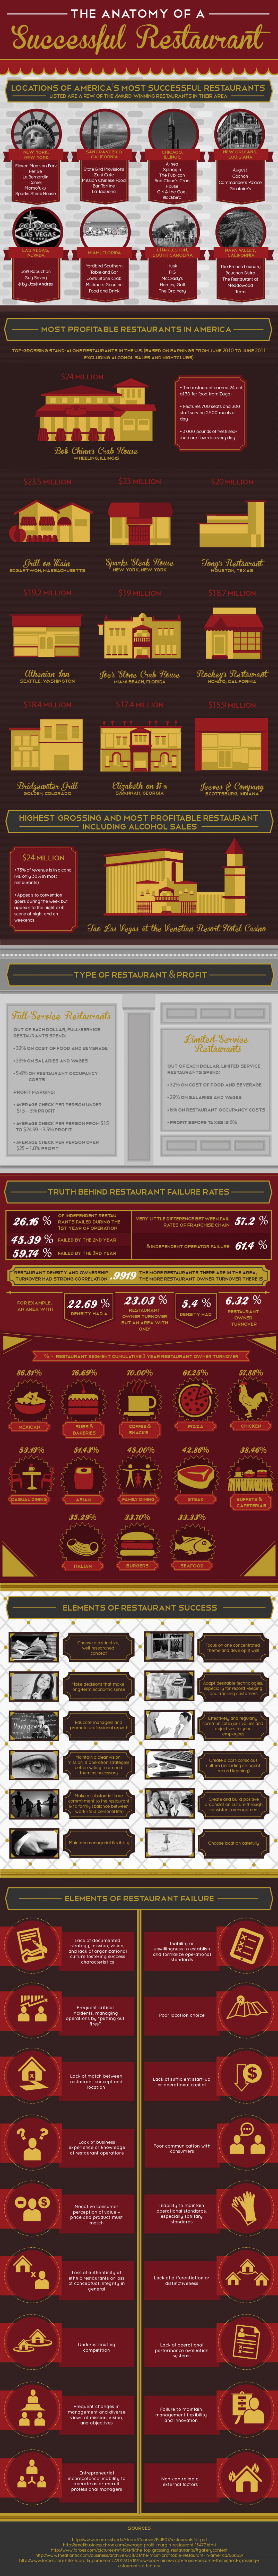 The Anatomy of a Successful Restaurant Infographic